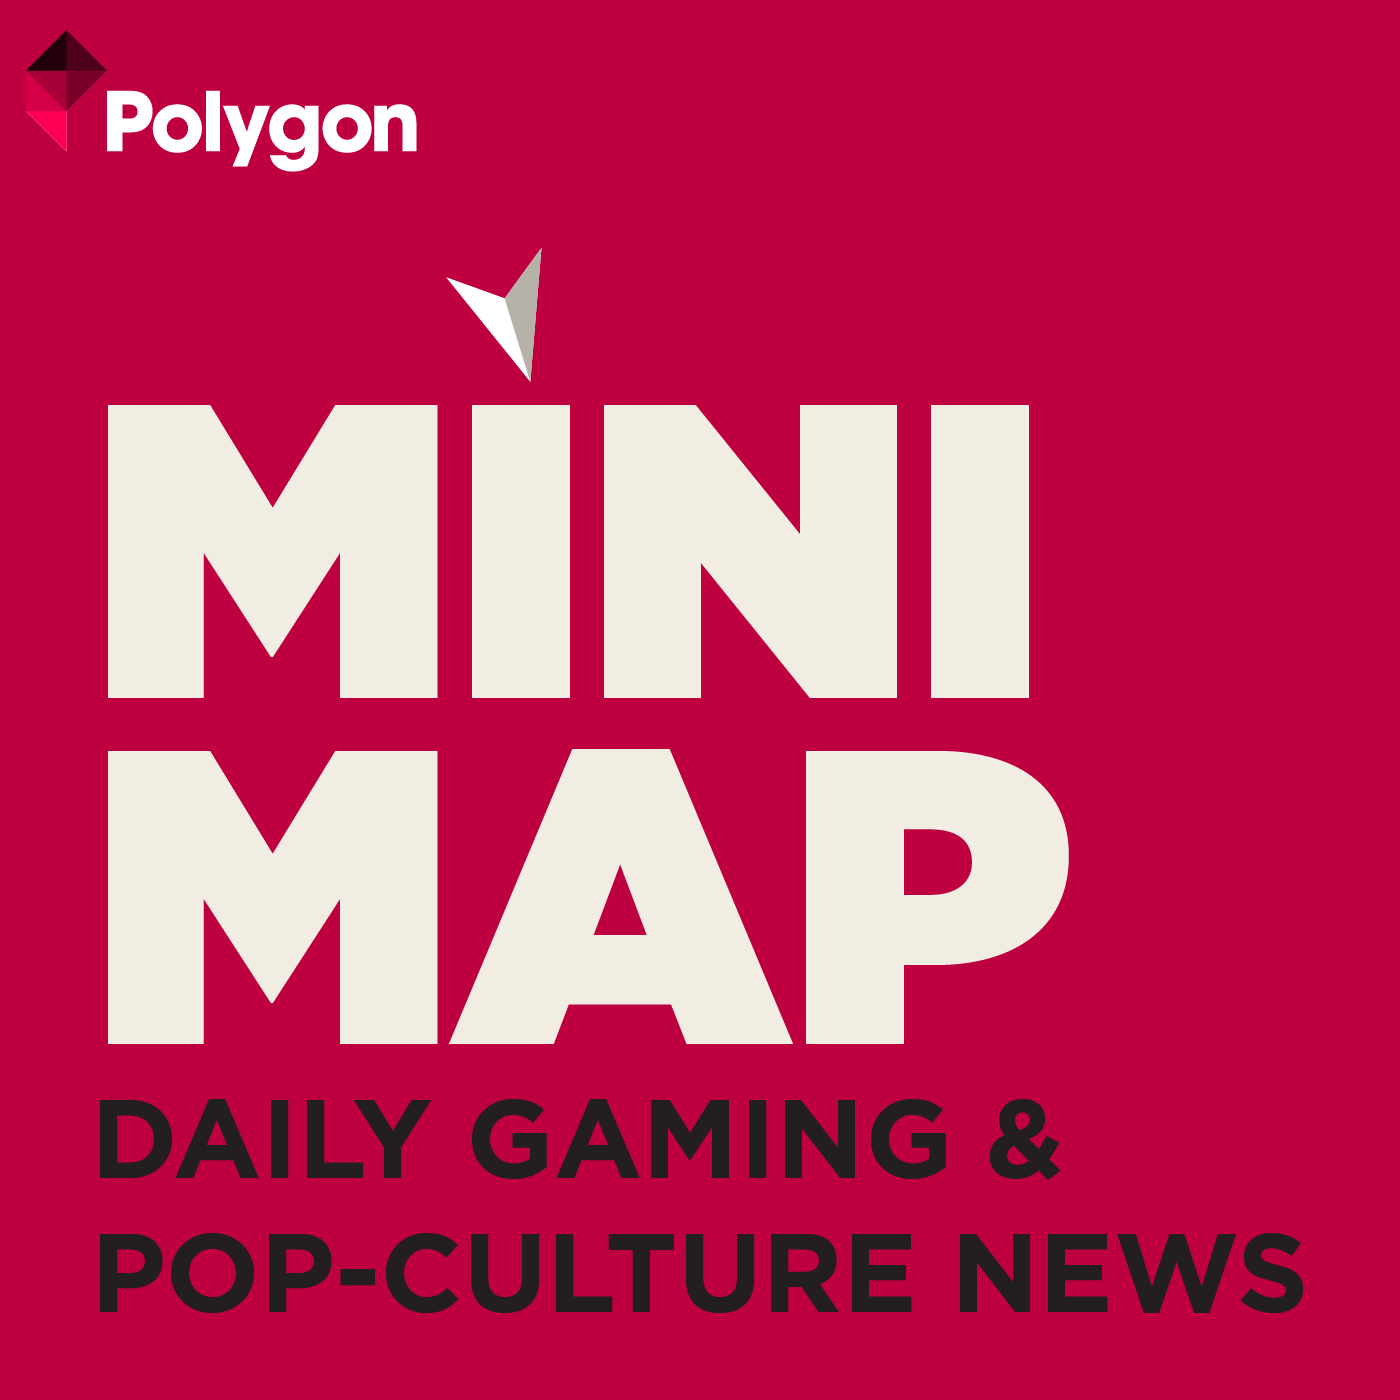 Polygon Minimap